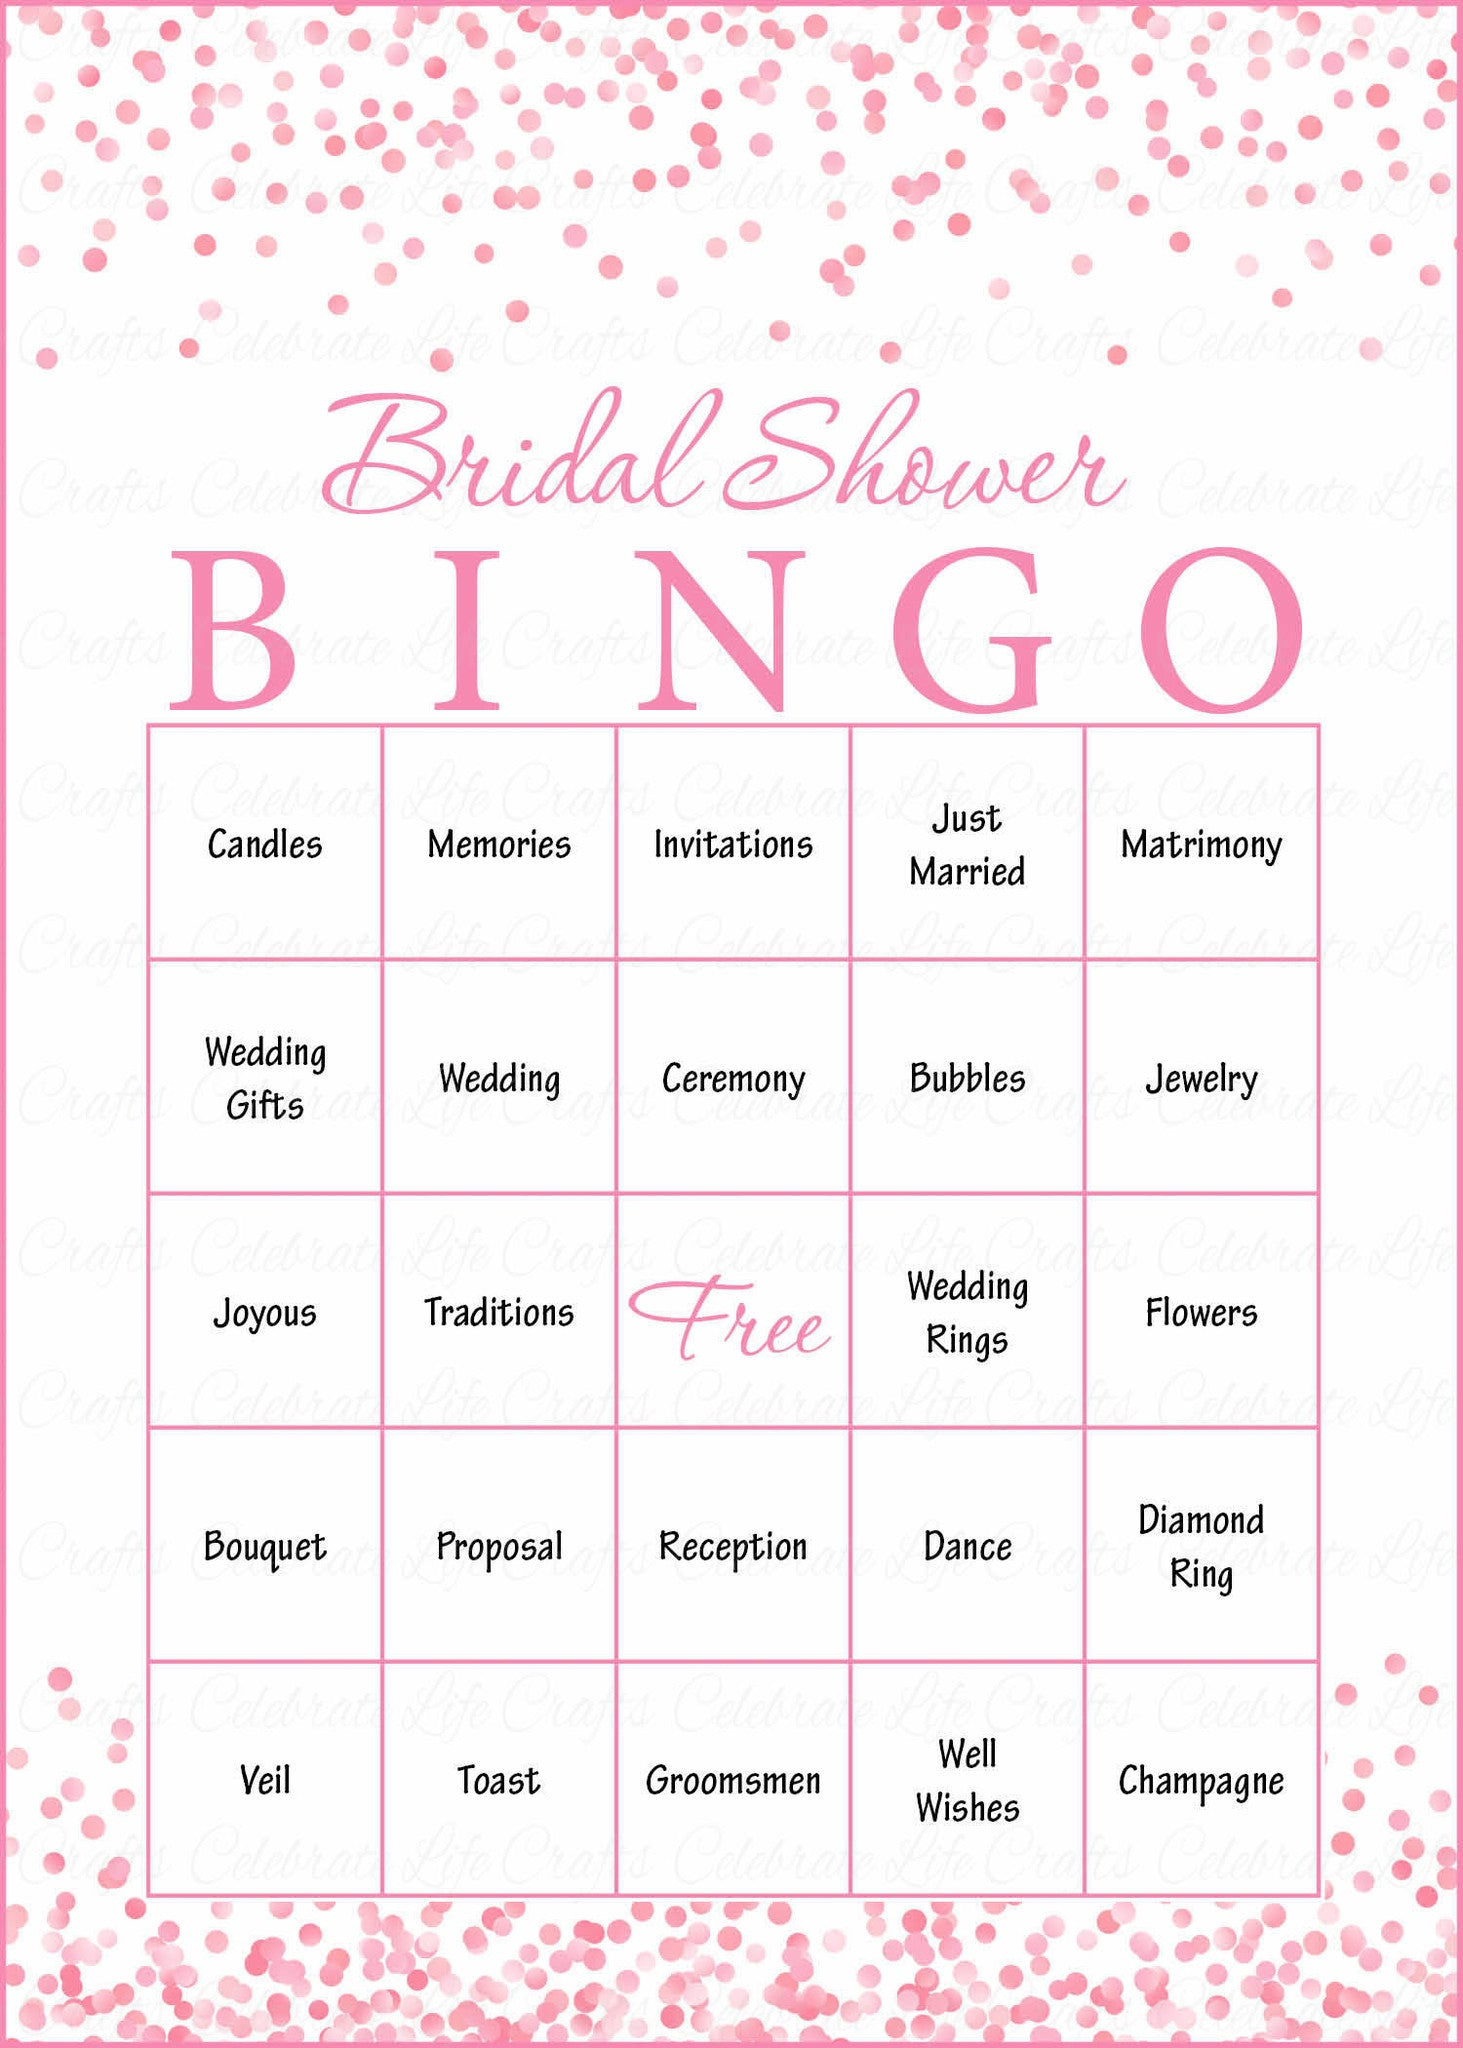 graphic about Bingo Chips Printable identify Bridal Bingo Playing cards - Printable Obtain - Prefilled - Bridal